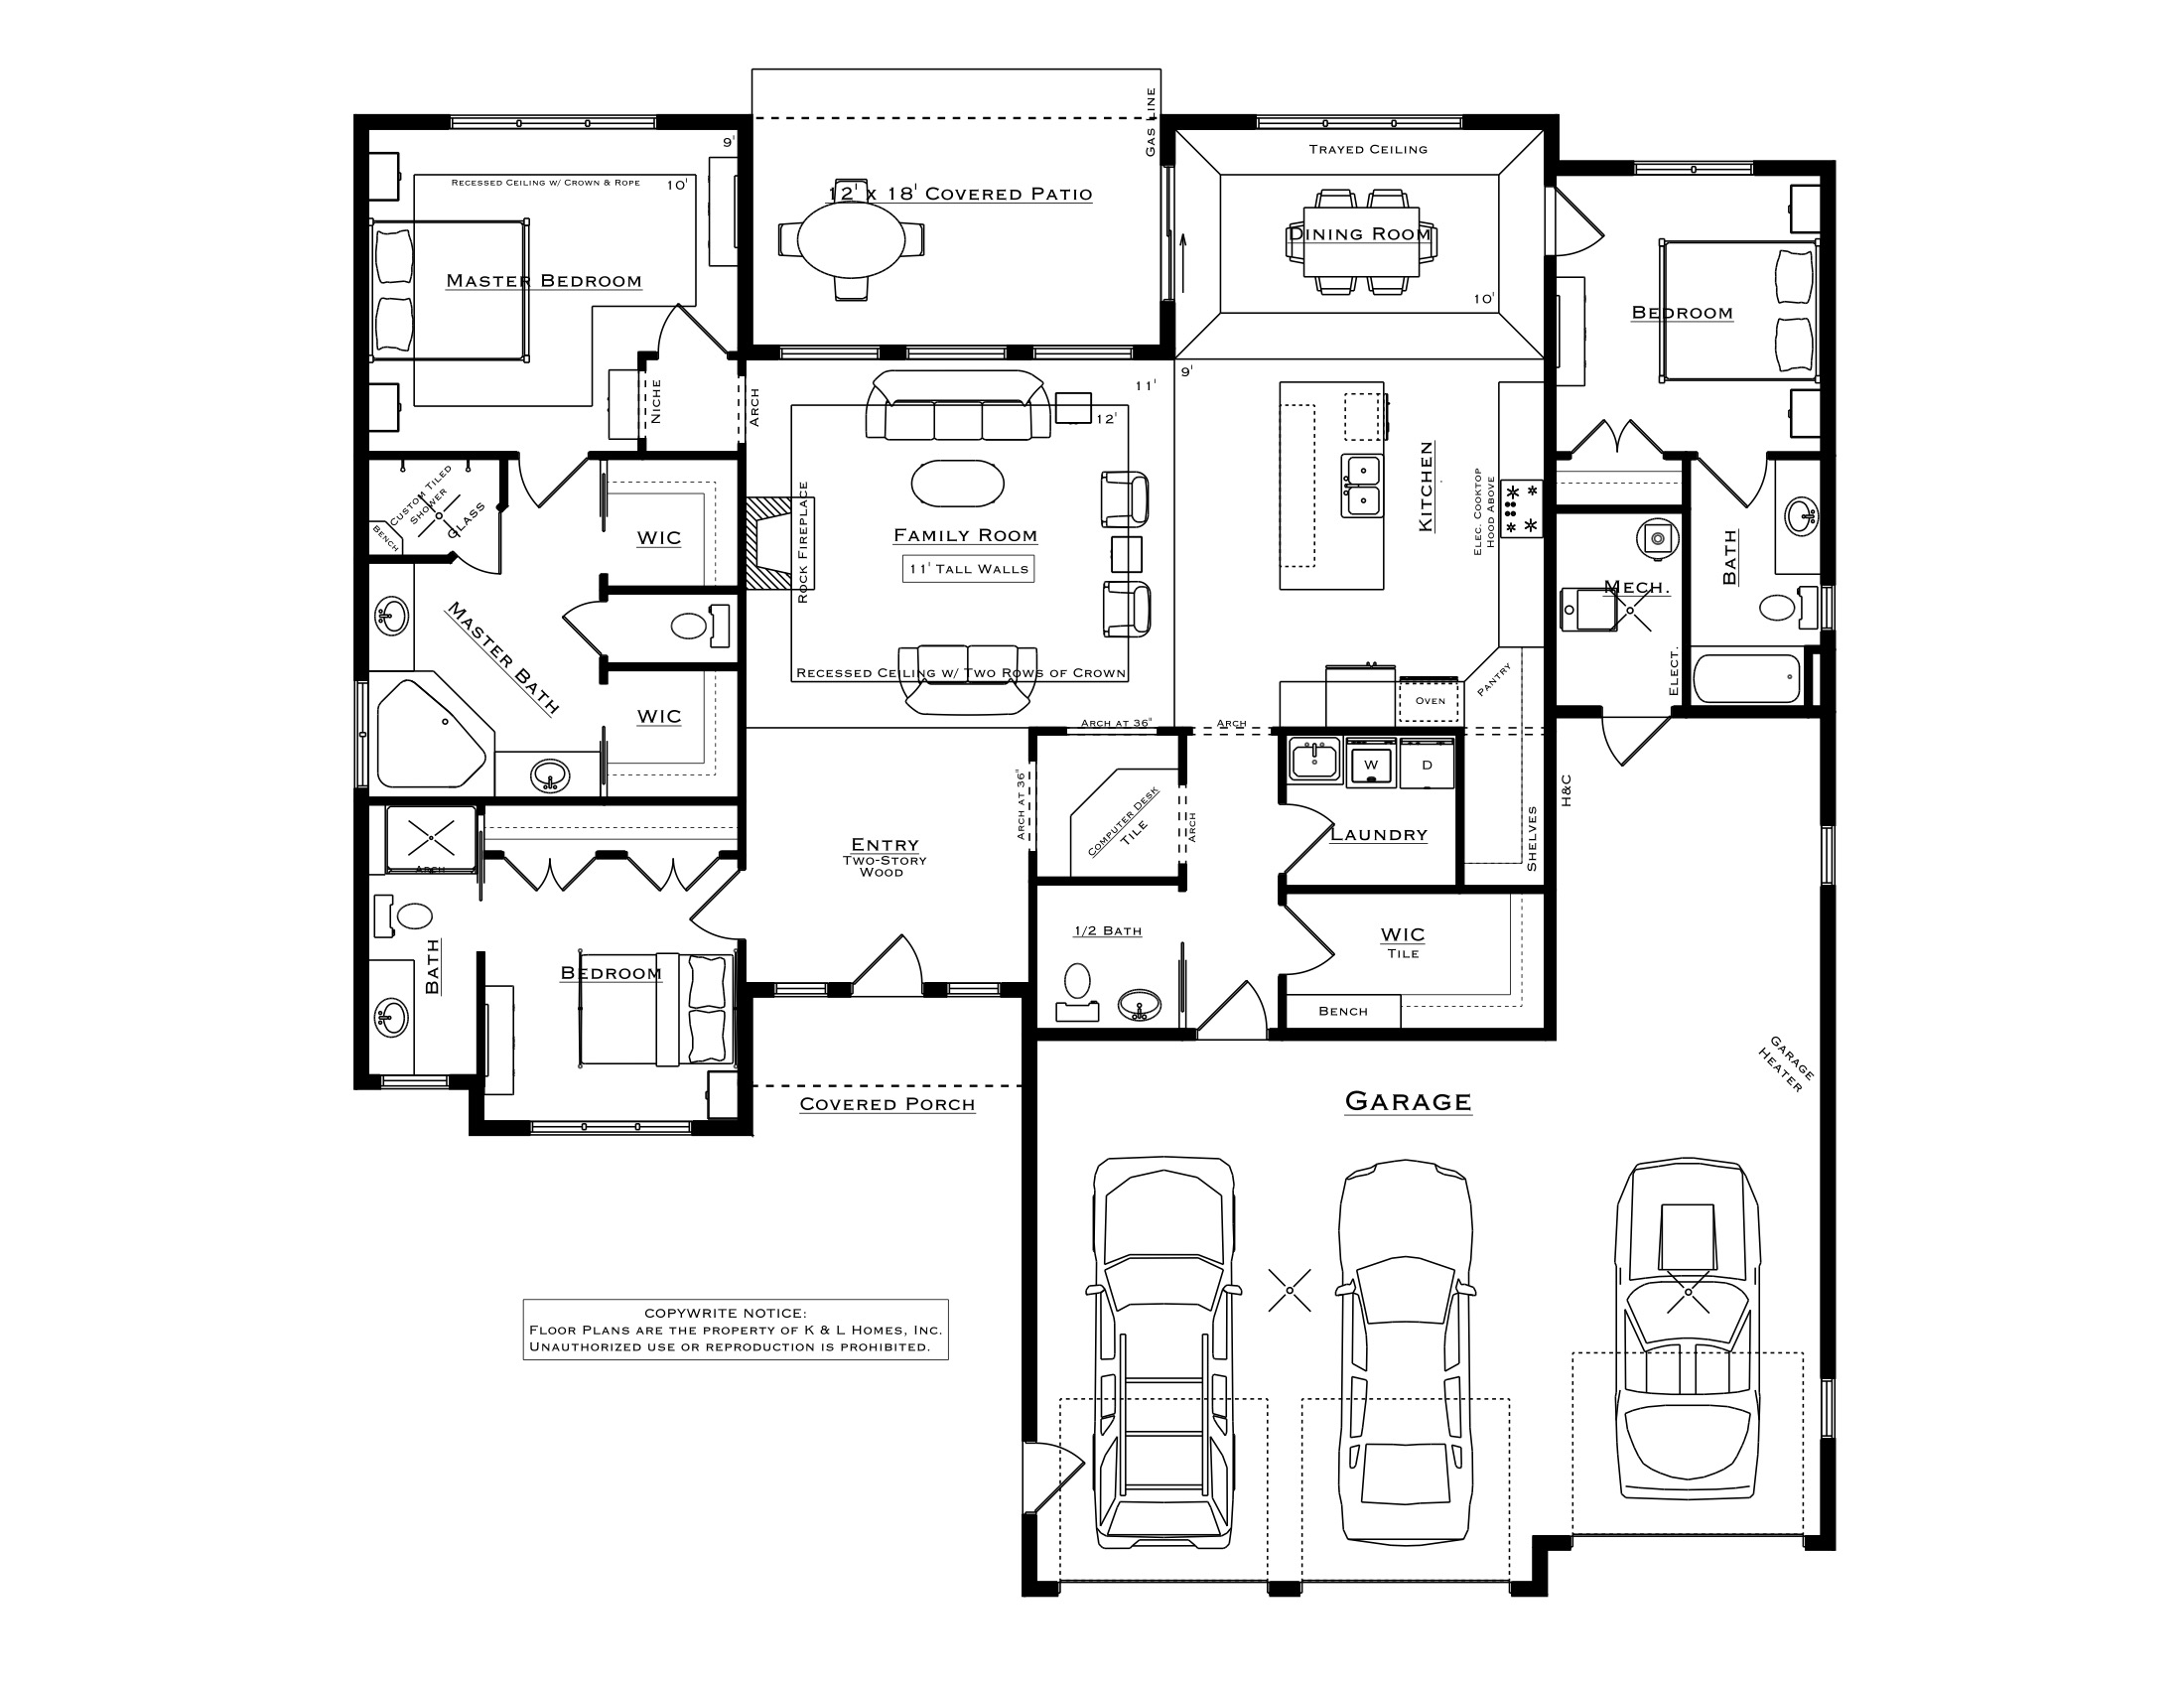 3 Bedroom Marco Plan